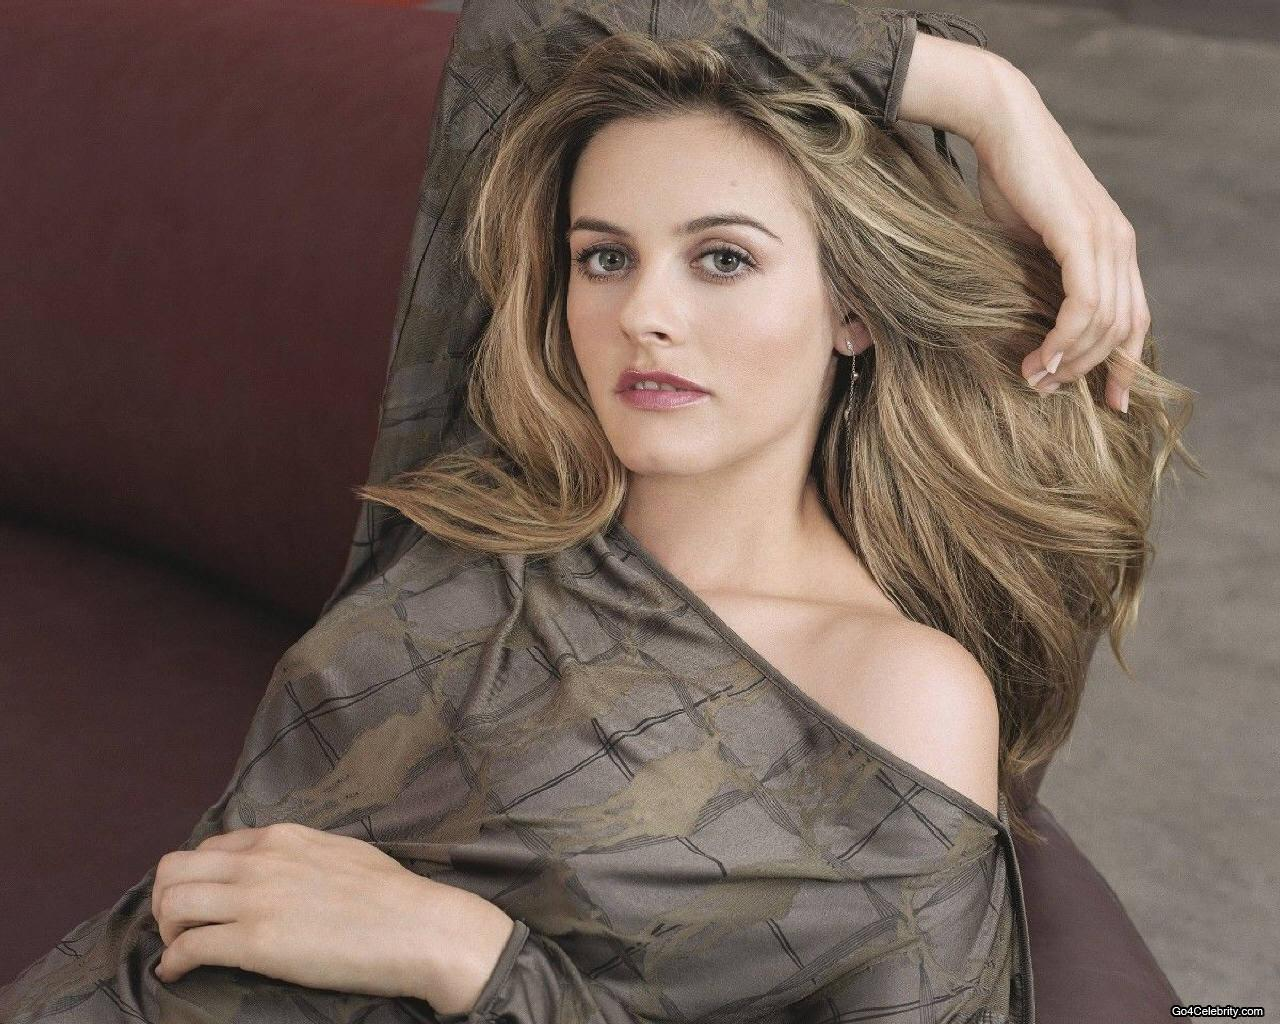 What excellent Alicia silverstone leaks nude can